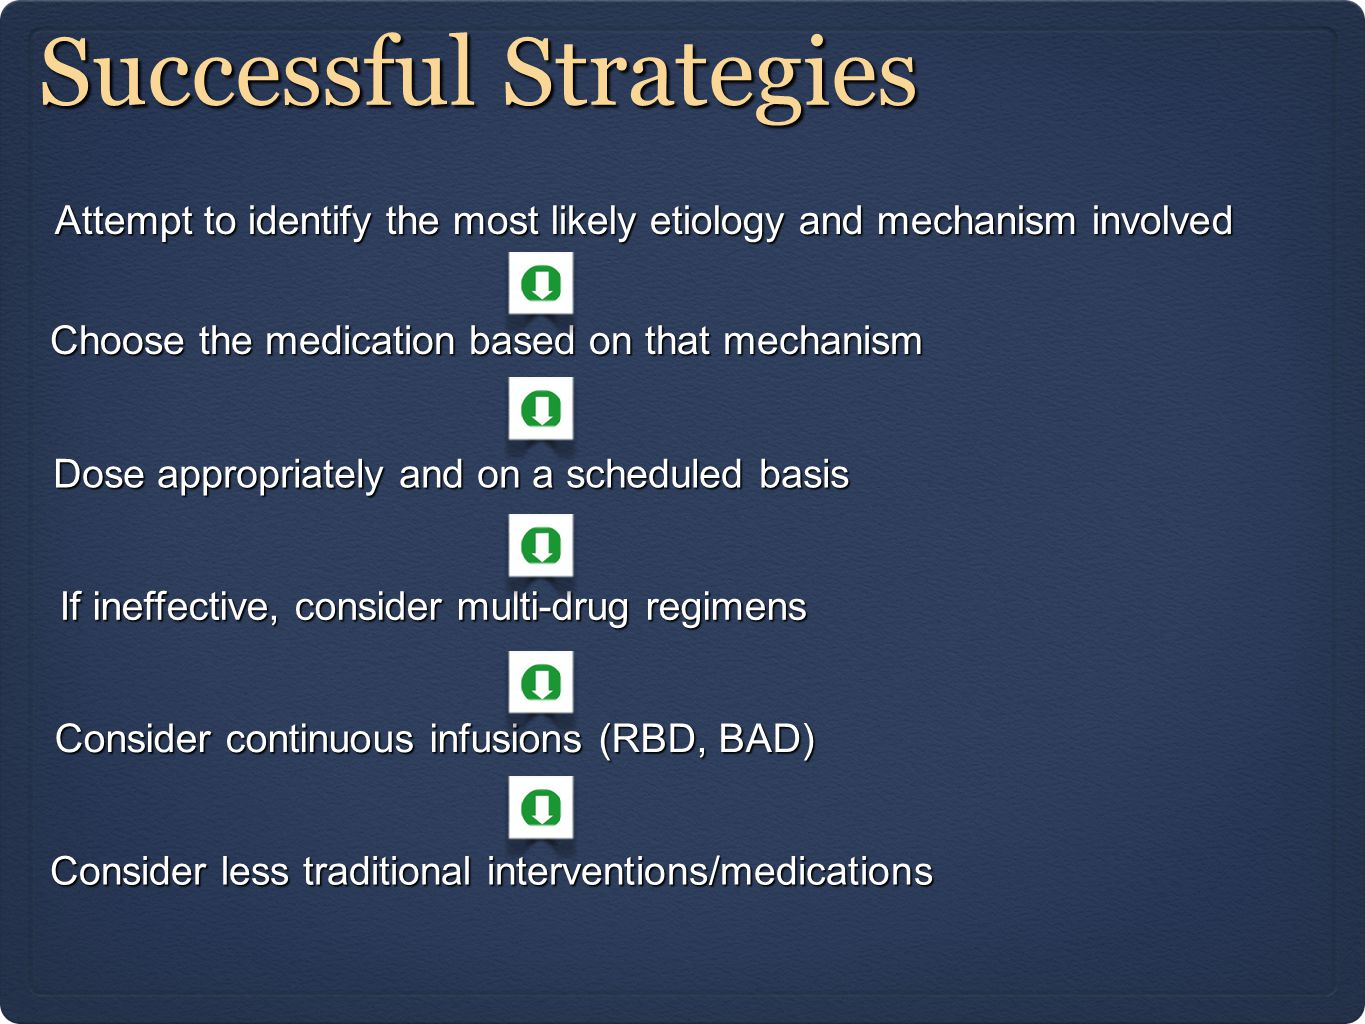 Successful Strategies Attempt to identify the most likely etiology and mechanism involved Choose the medication based on that mechanism Dose appropriately and on a scheduled basis If ineffective, consider multi-drug regimens Consider continuous infusions (RBD, BAD) Consider less traditional interventions/medications